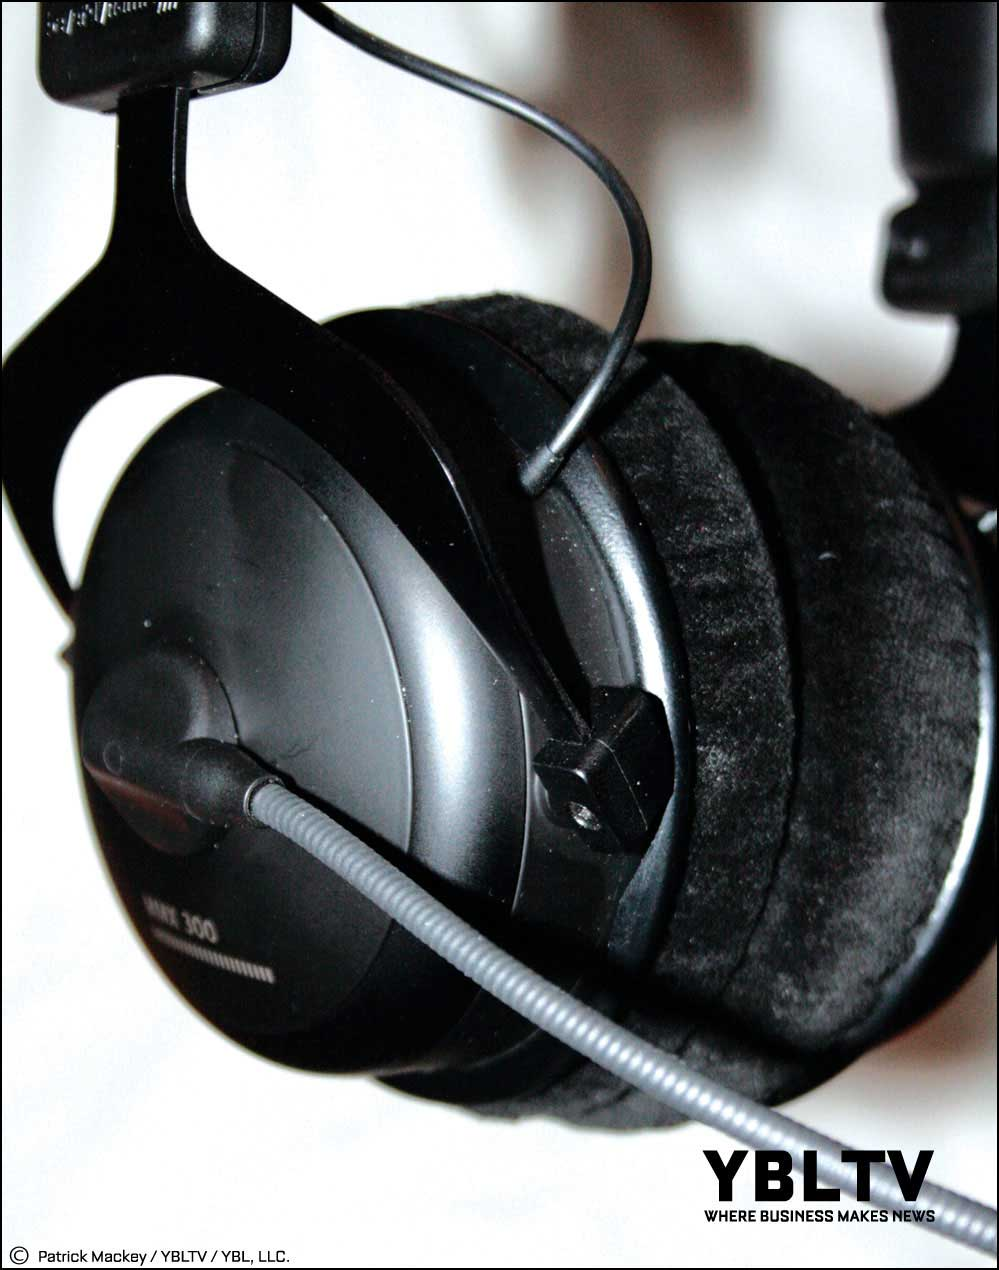 beyerdynamic MMX 300. YBLTV Review by Patrick Mackey.